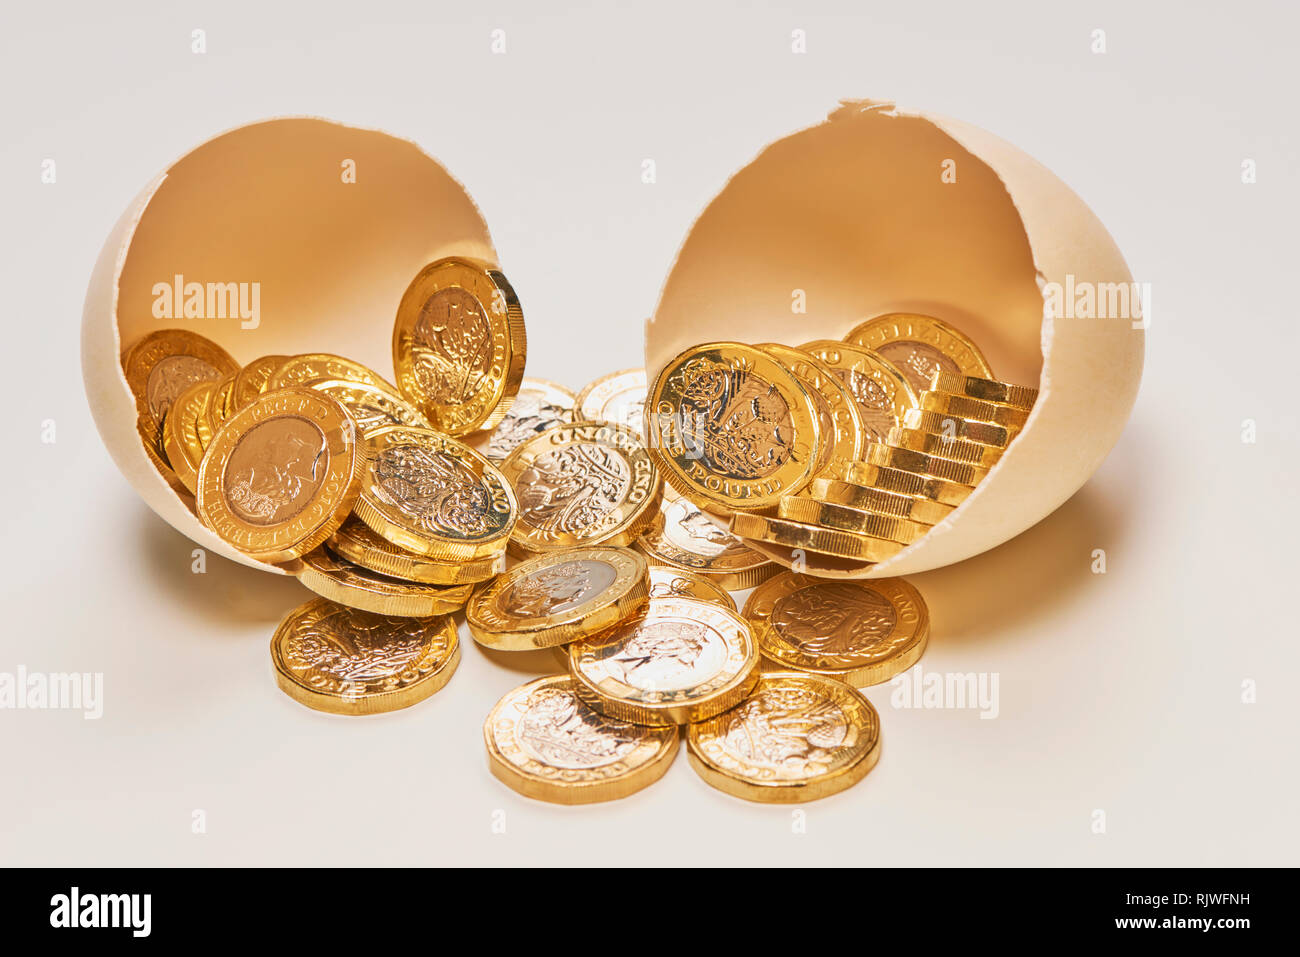 Coins Stock Photos Amp Coins Stock Images Alamy